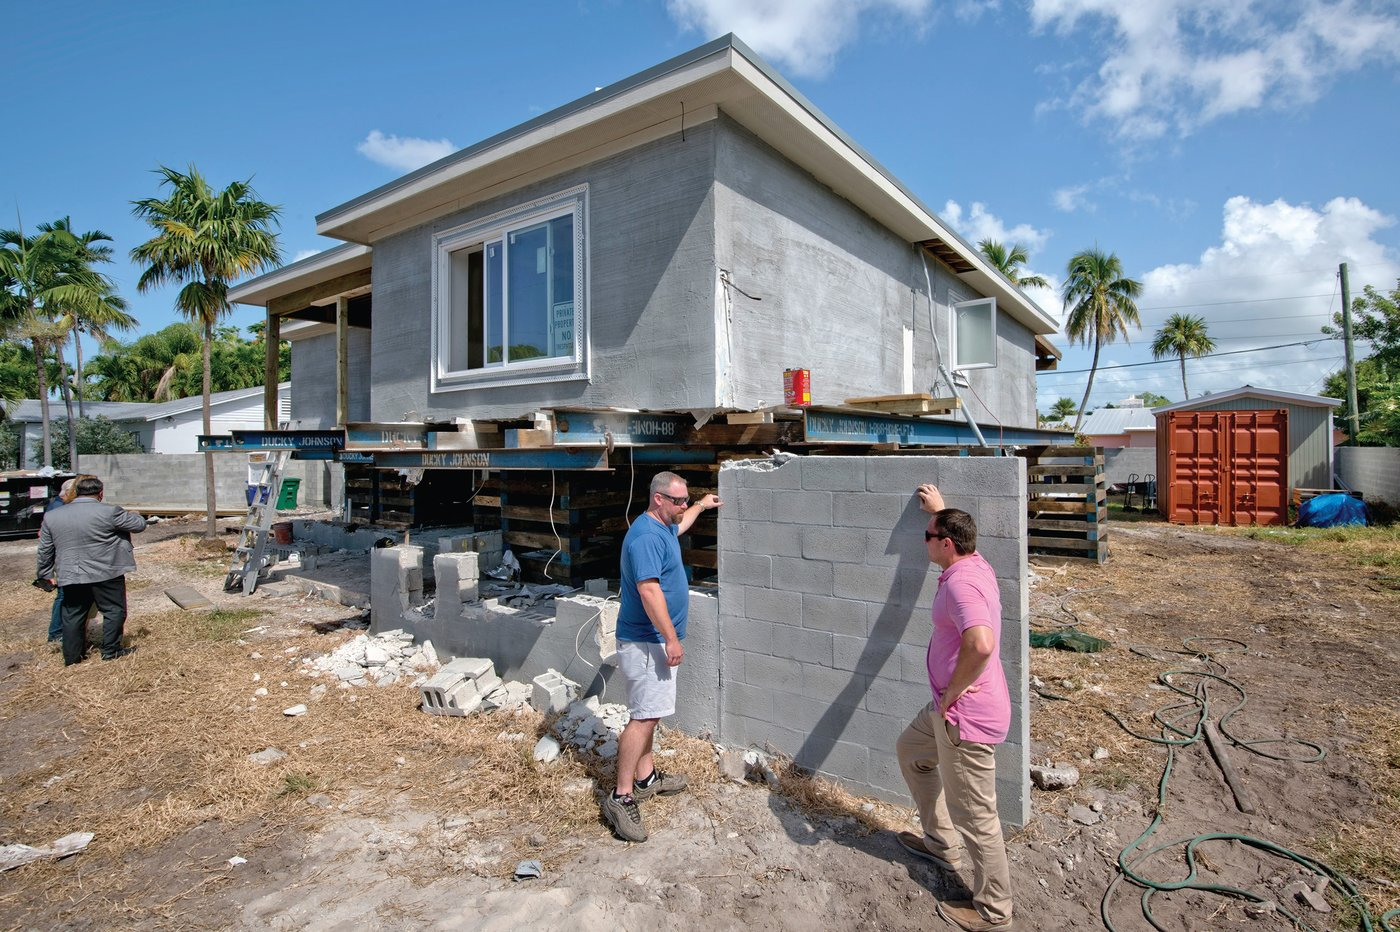 RISE TIME. Danny McKearan, right, of Ducky Johnson Home Elevation Services, speaks with homeowner Peter Batty Jr. about the steps involved in raising his block-style home in Key West. Batty's home is the first non-wood construction home to be successfully elevated in the entire Florida Keys.